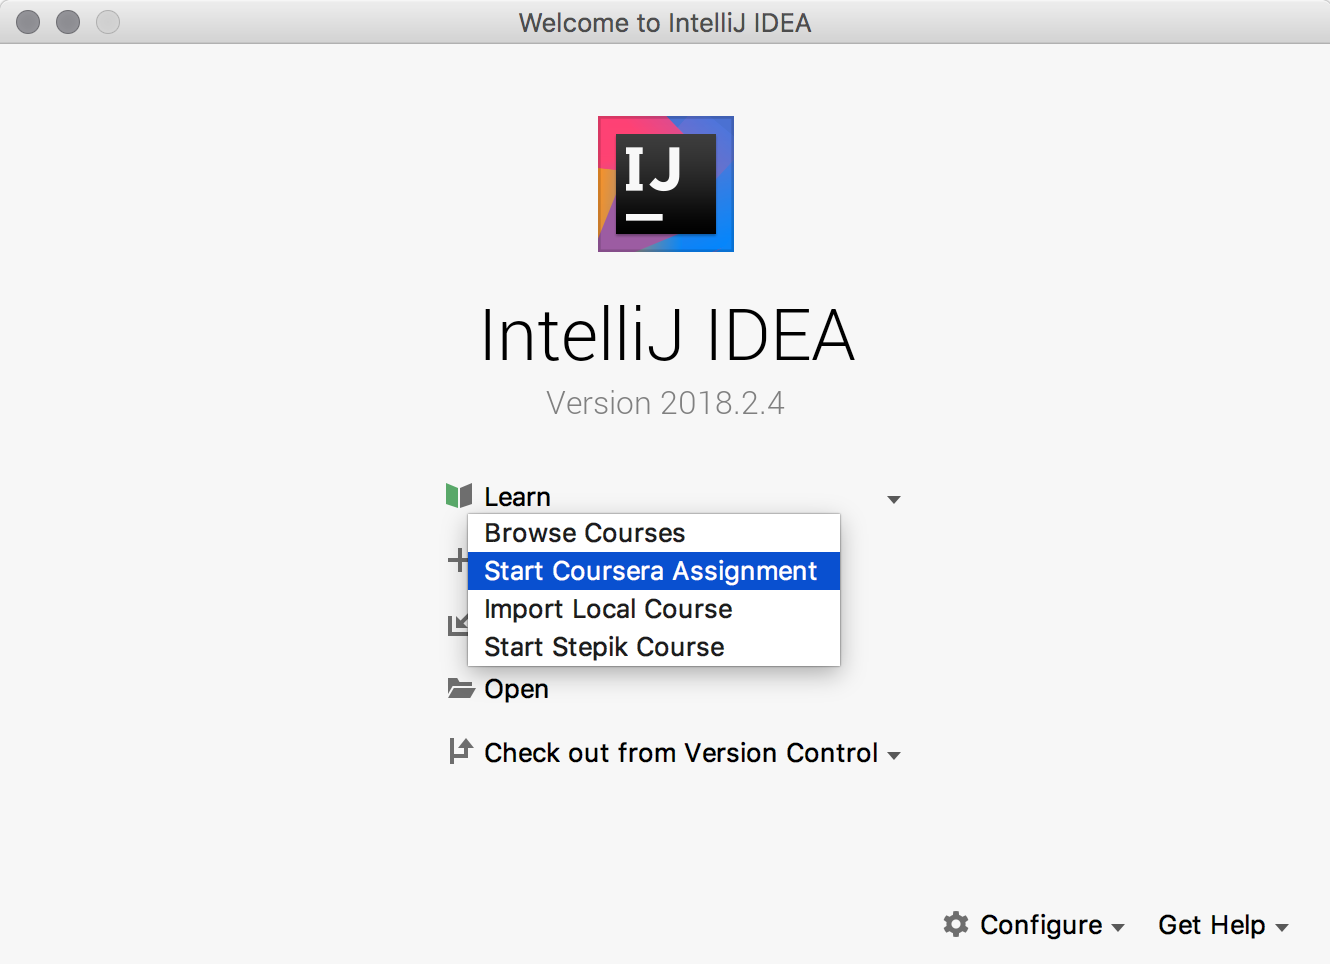 Coursera assignments in IntelliJ IDEA